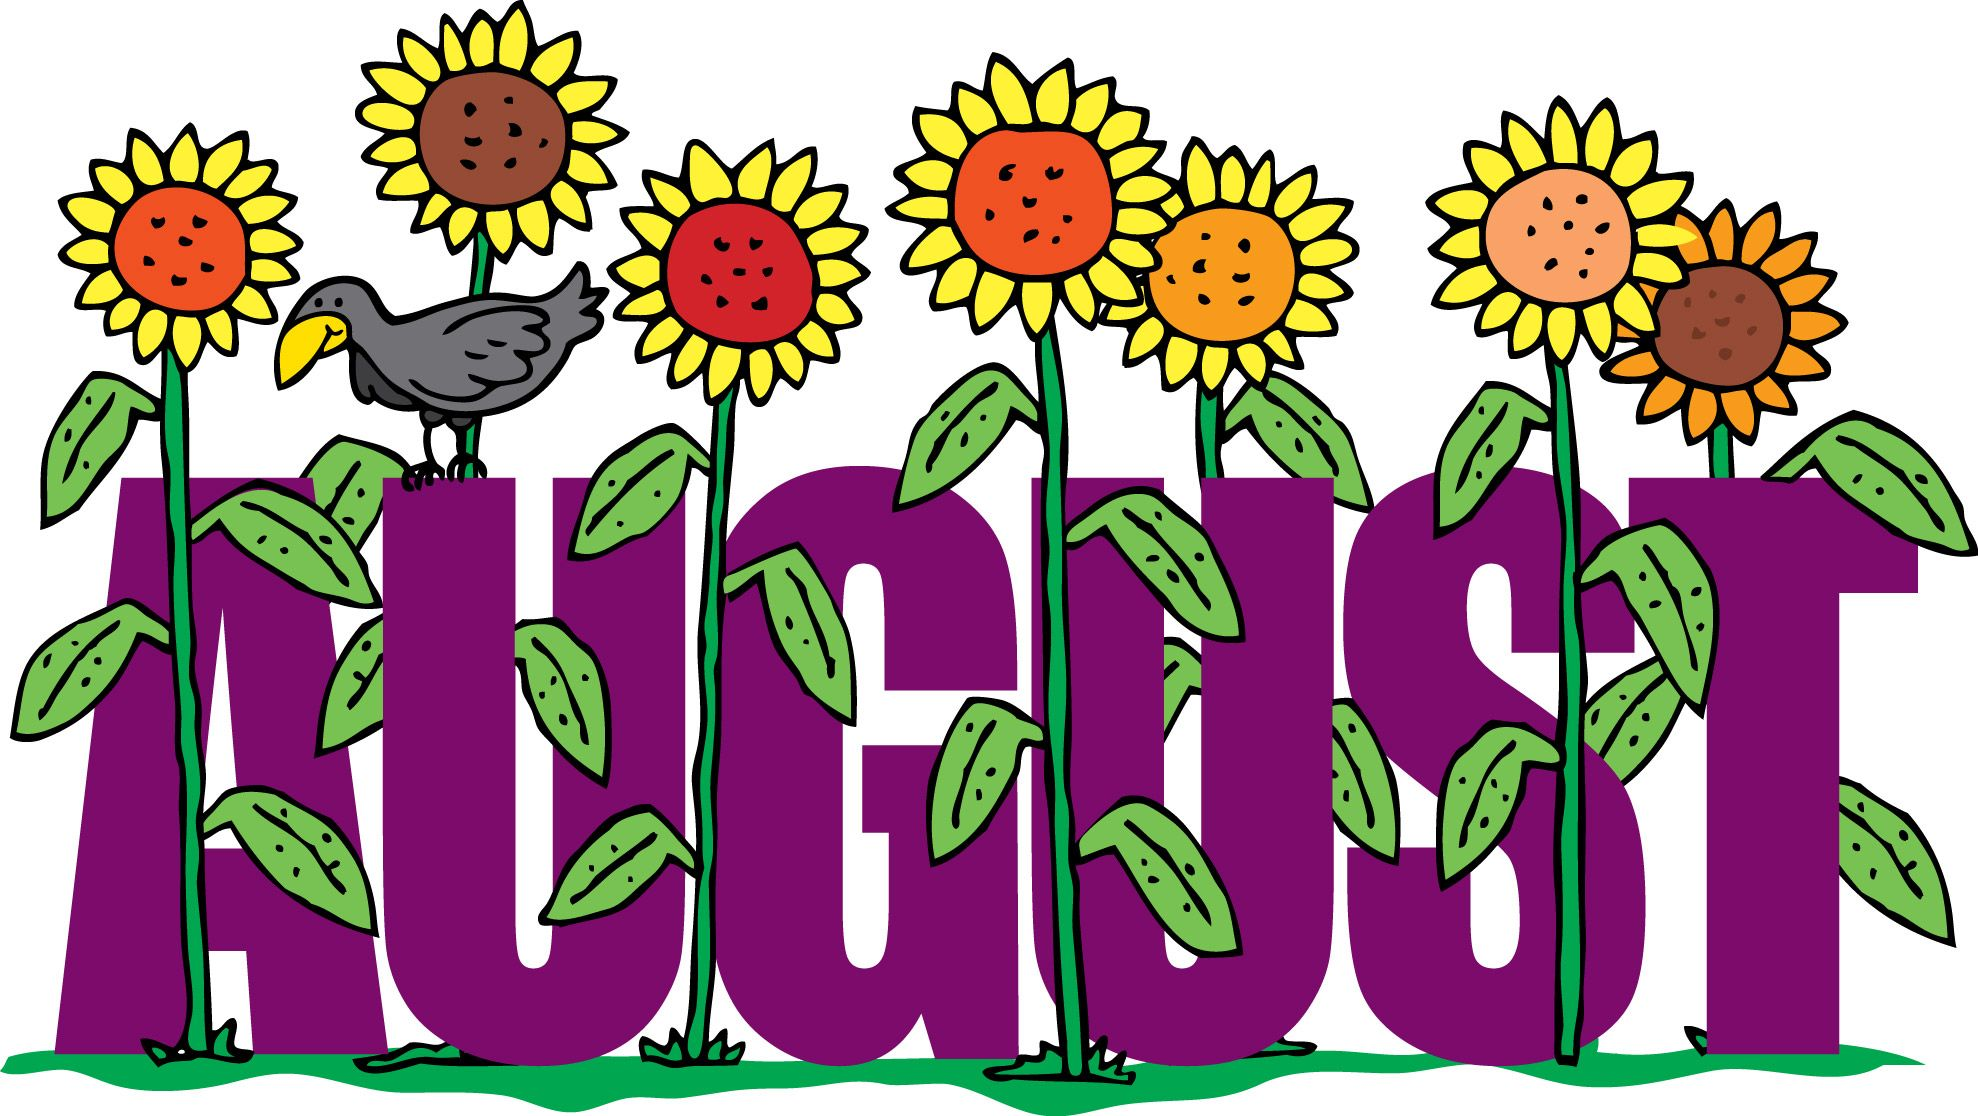 hight resolution of august floral clipart for screen saver